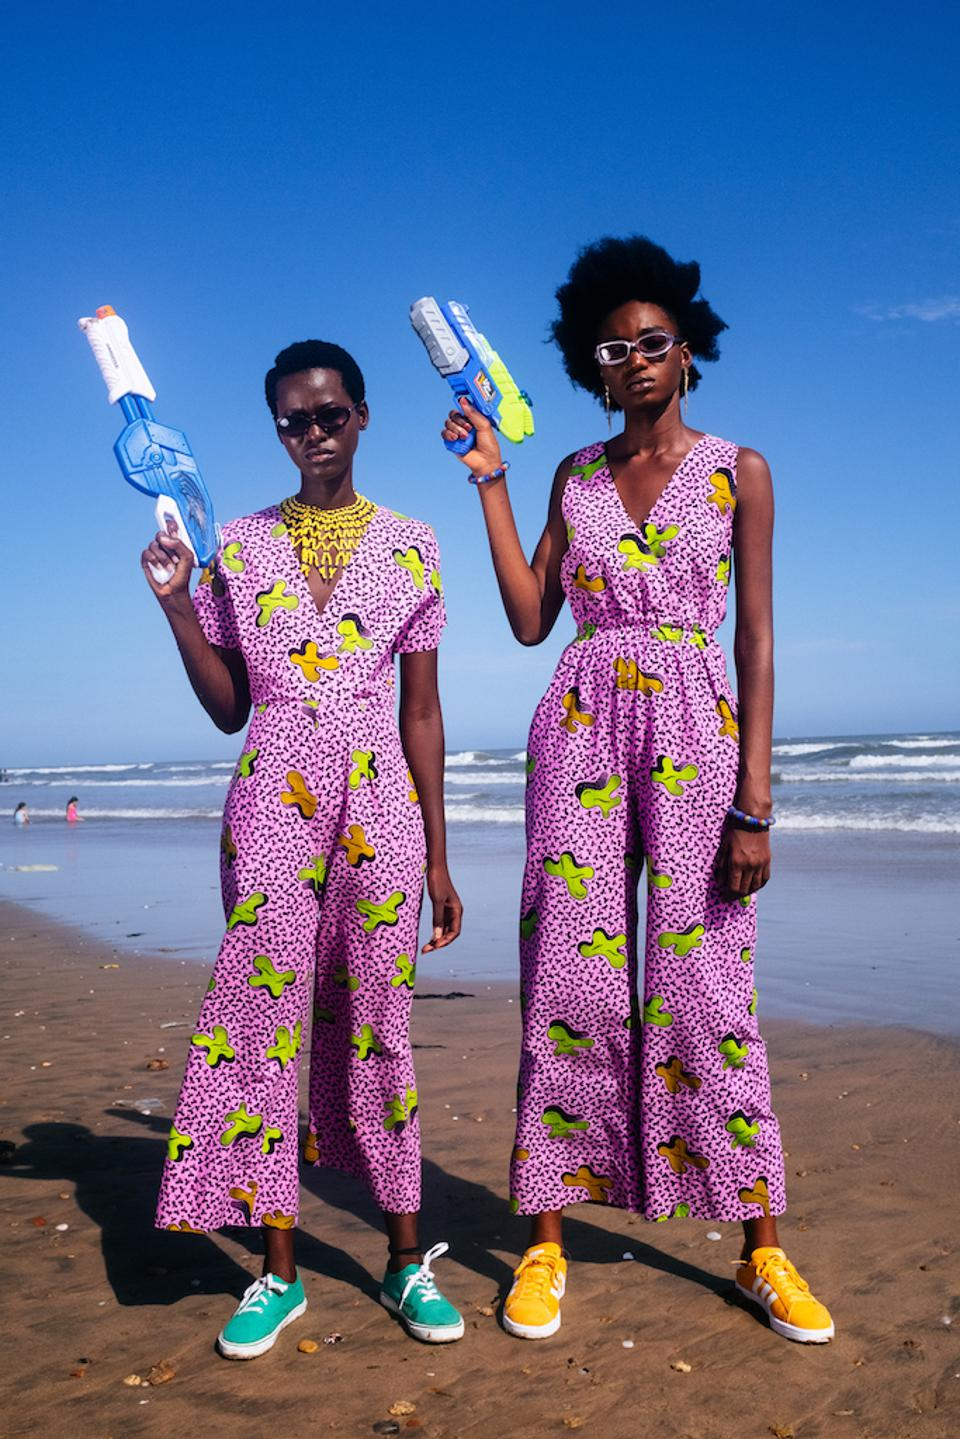 Two African models wearing matching pink-printed jumpsuits standing on a beach brandishing water guns.